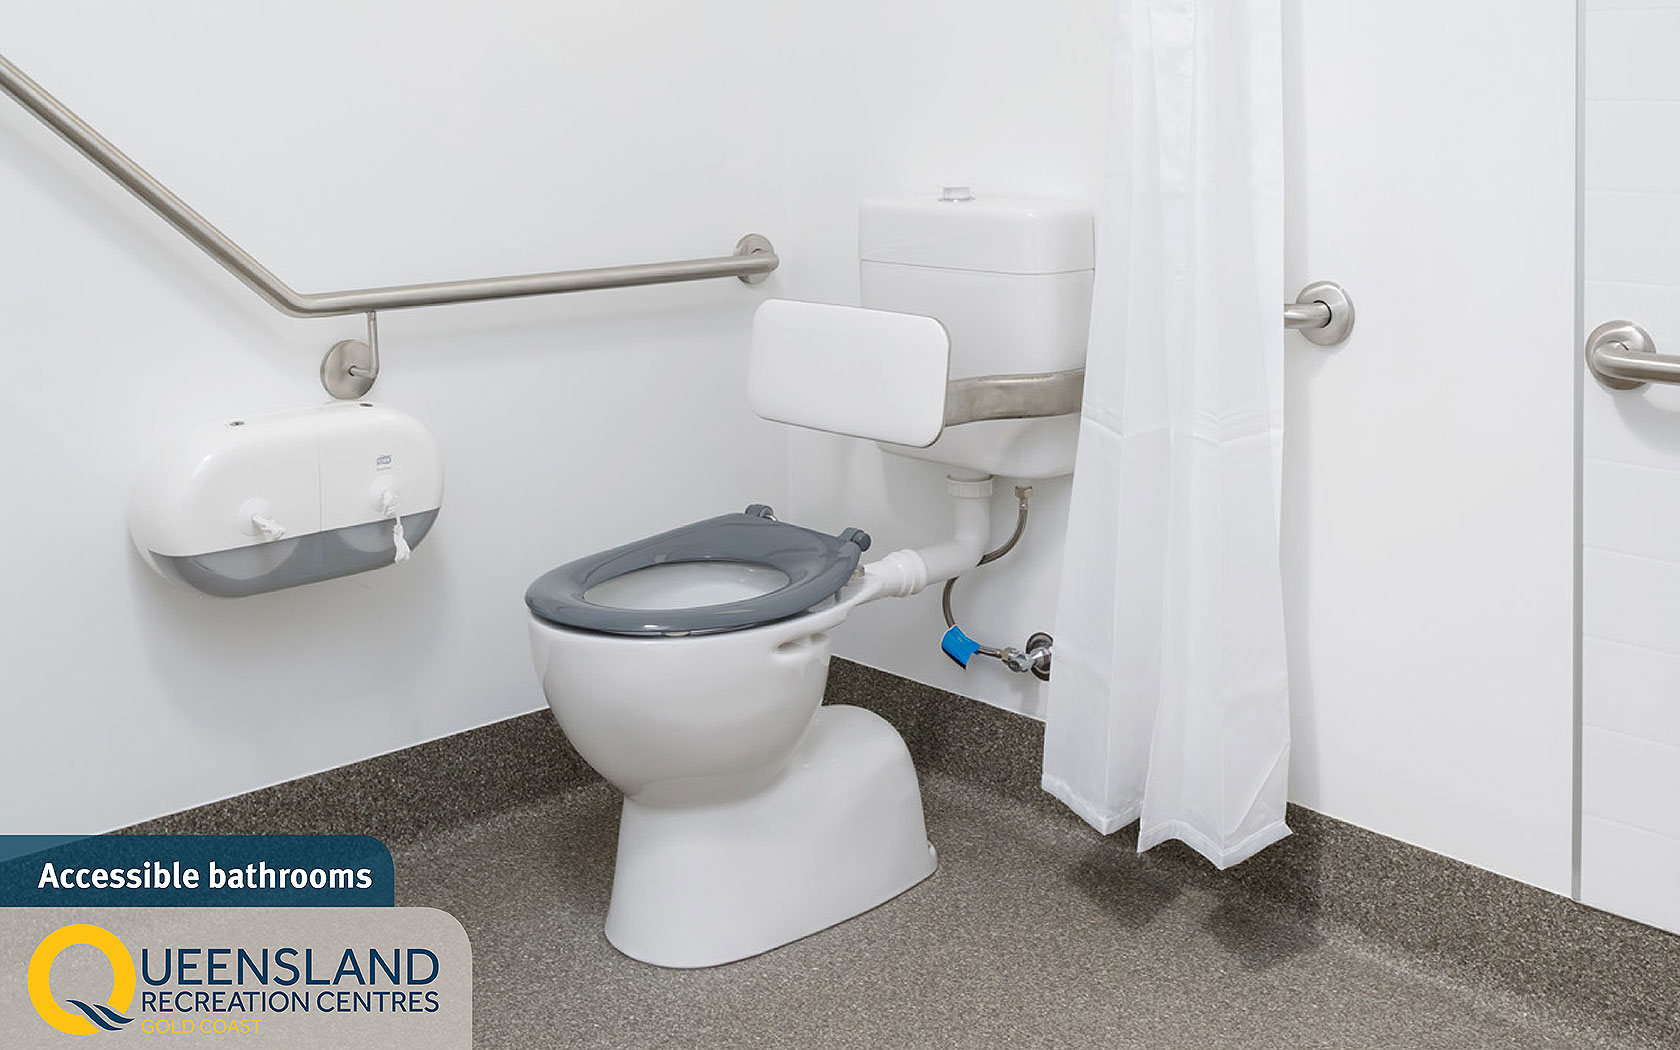 Accessible cabin bathroom with hand rails and accessible dispensers at the Gold Coast Recreation Centre